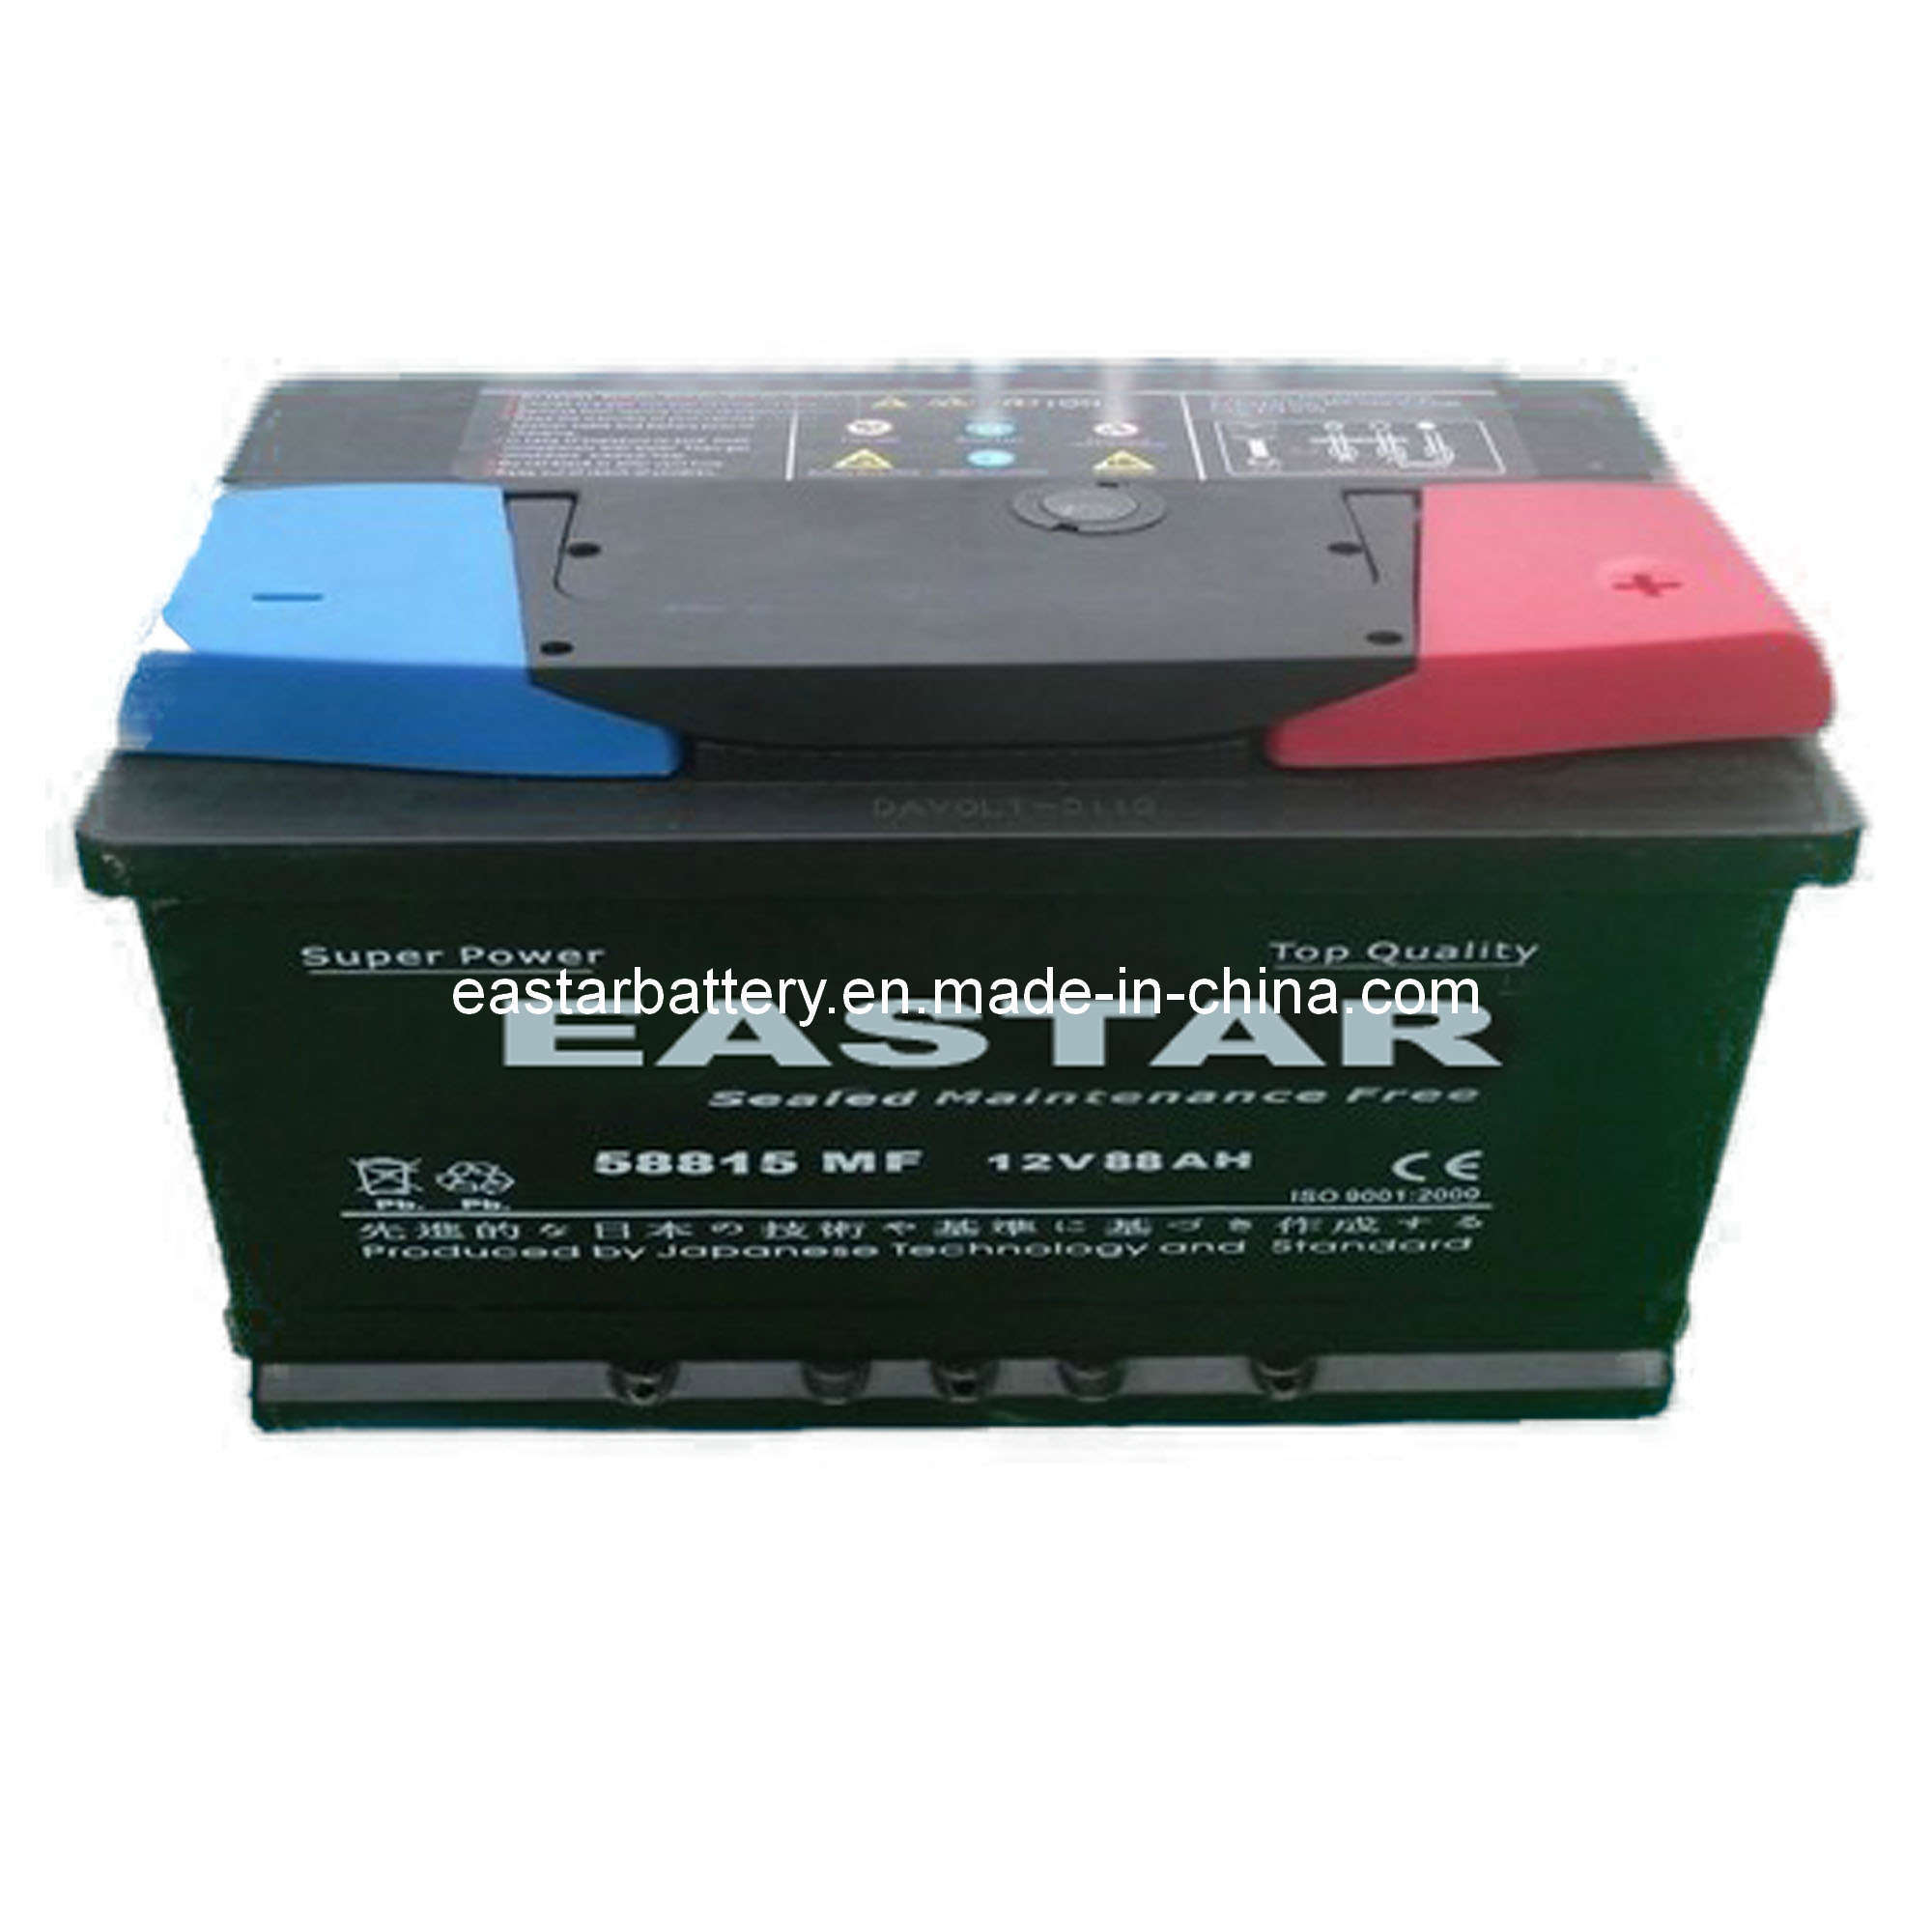 DIN-Standard Mf88 Mf Car Battery 12V, 88ah